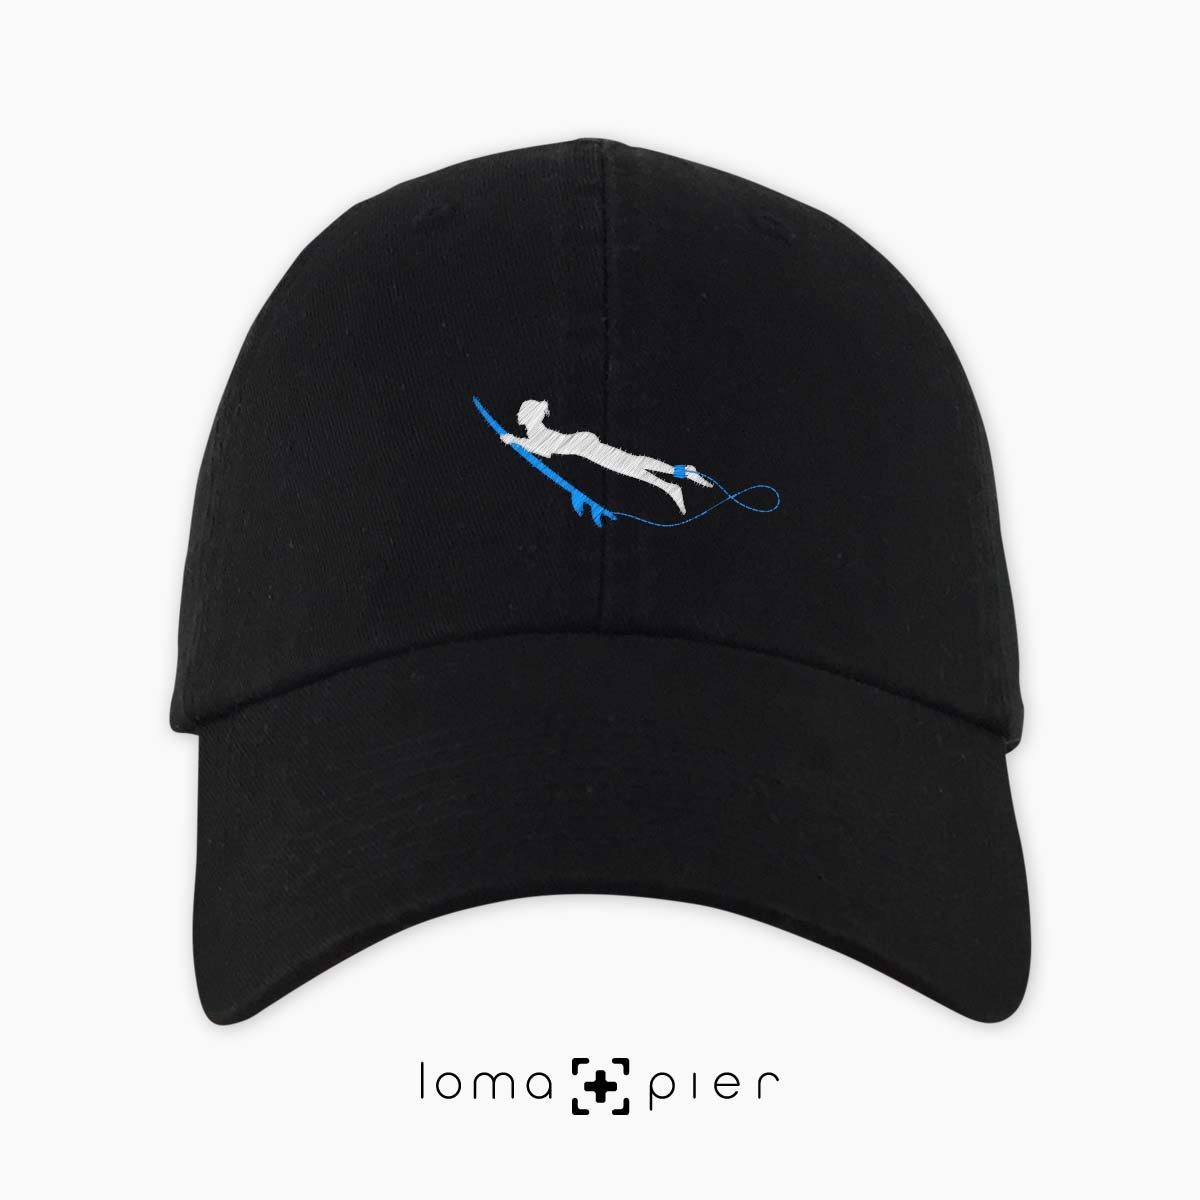 DUCK NAKED SURFER icon embroidered on a black dad hat by loma+pier hat store made in the USA